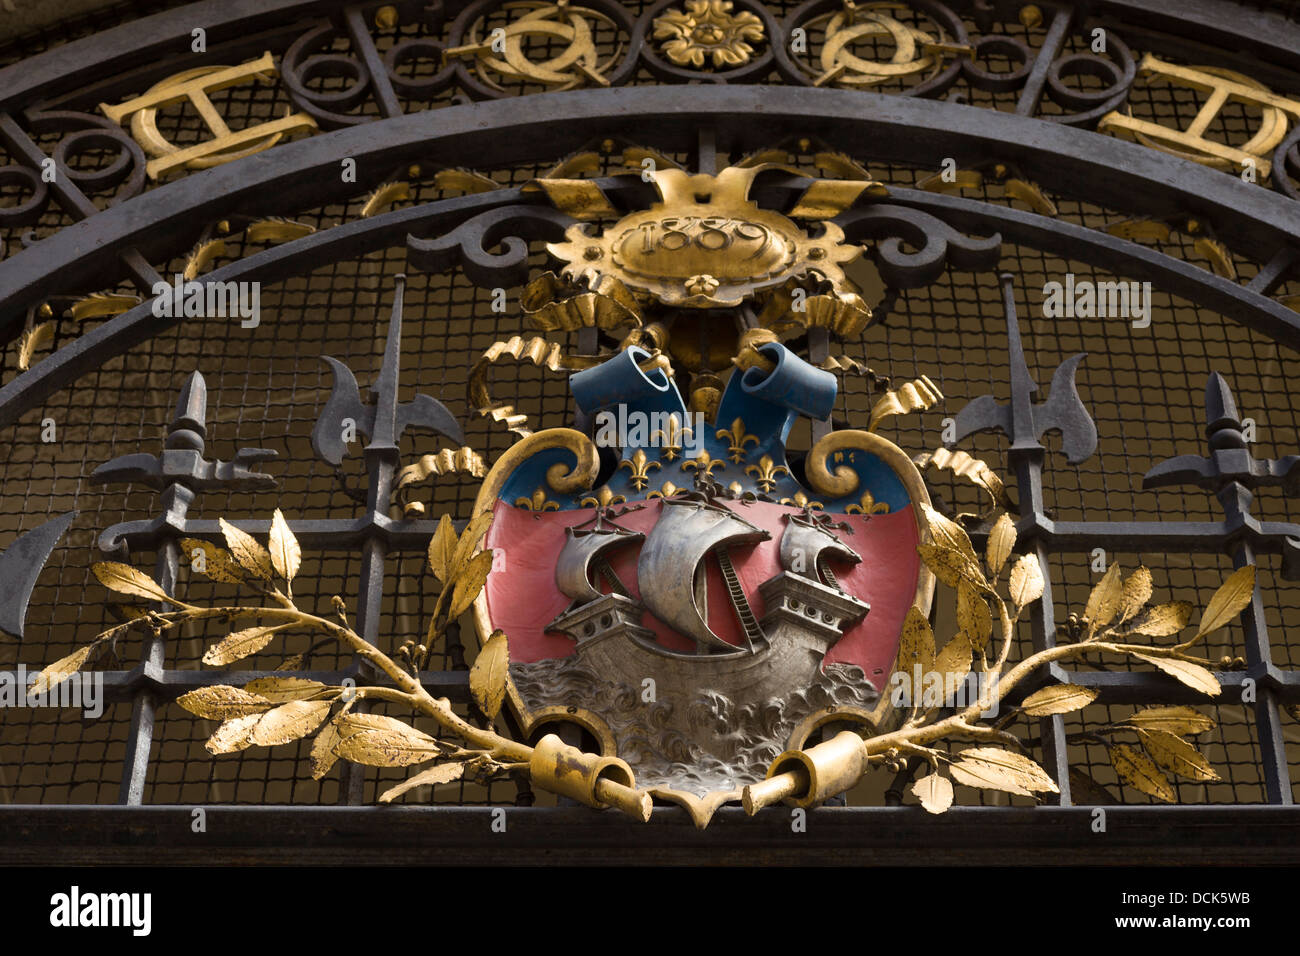 Paris coat of arms at entrance to the Carnavalet Museum Paris, France (dedicated to Paris history) - Stock Image